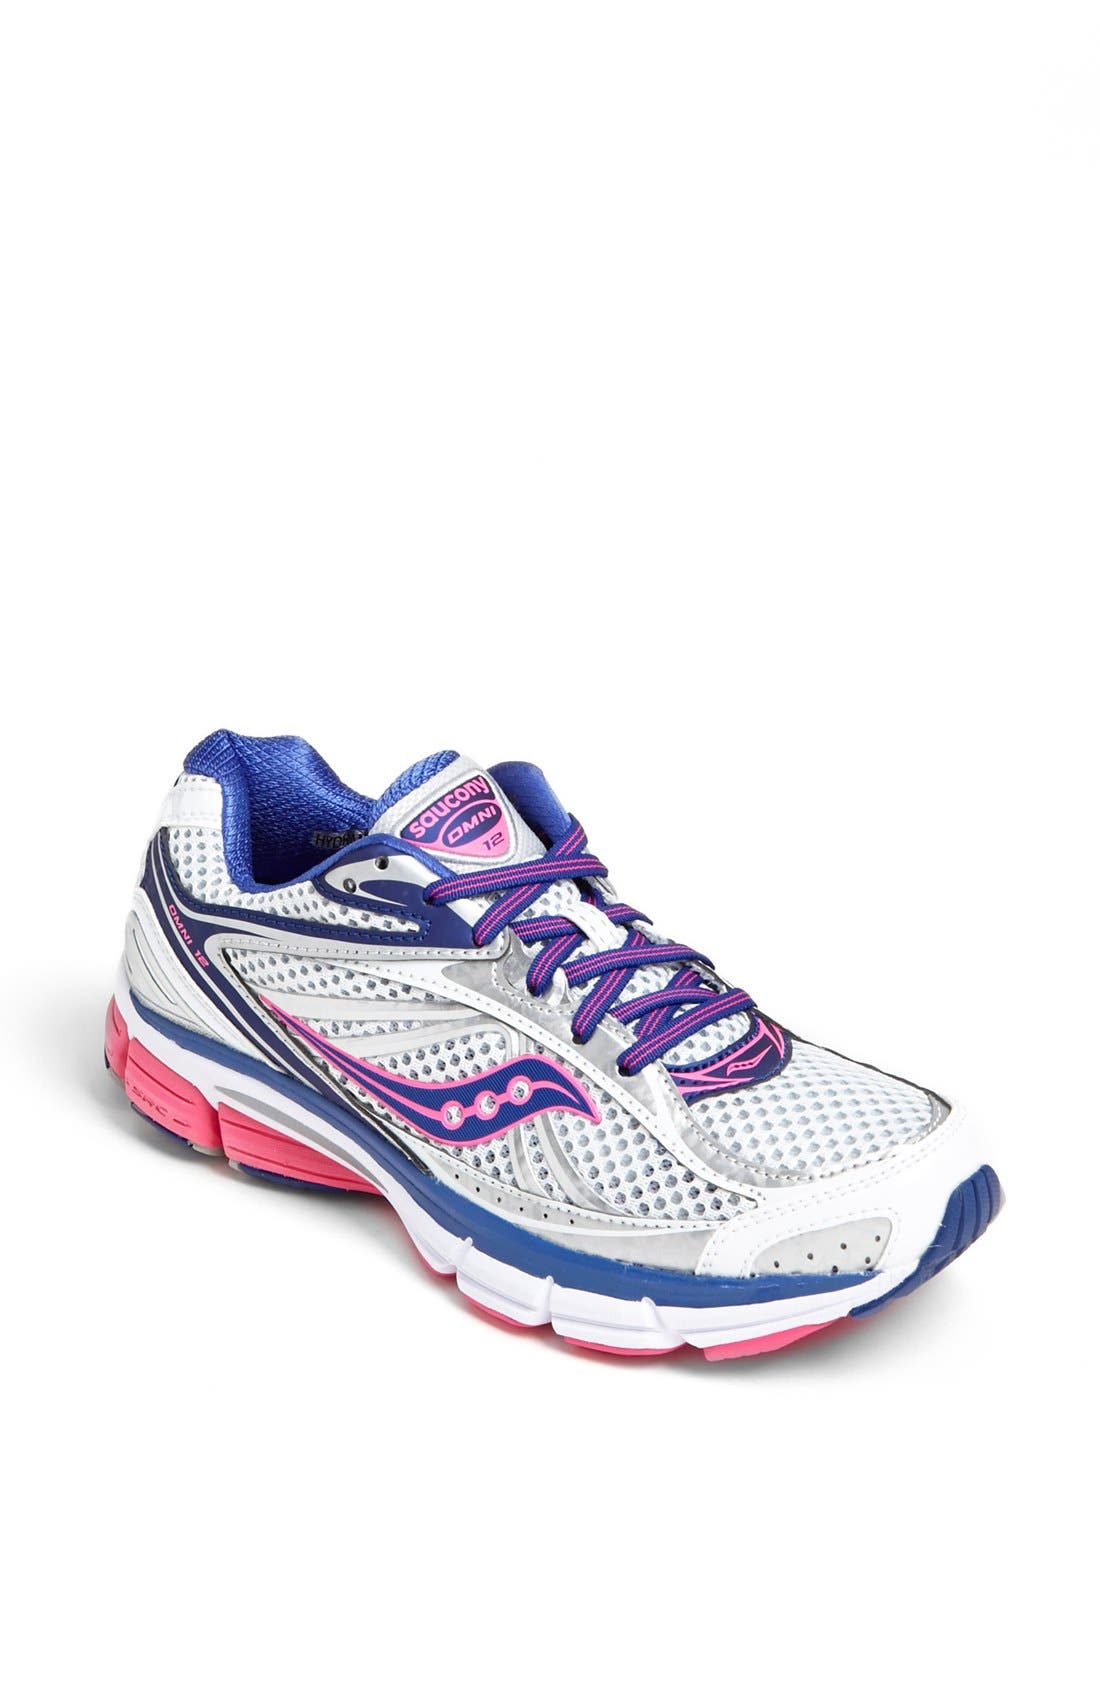 Alternate Image 1 Selected - Saucony 'Omni 12' Running Shoe (Women)